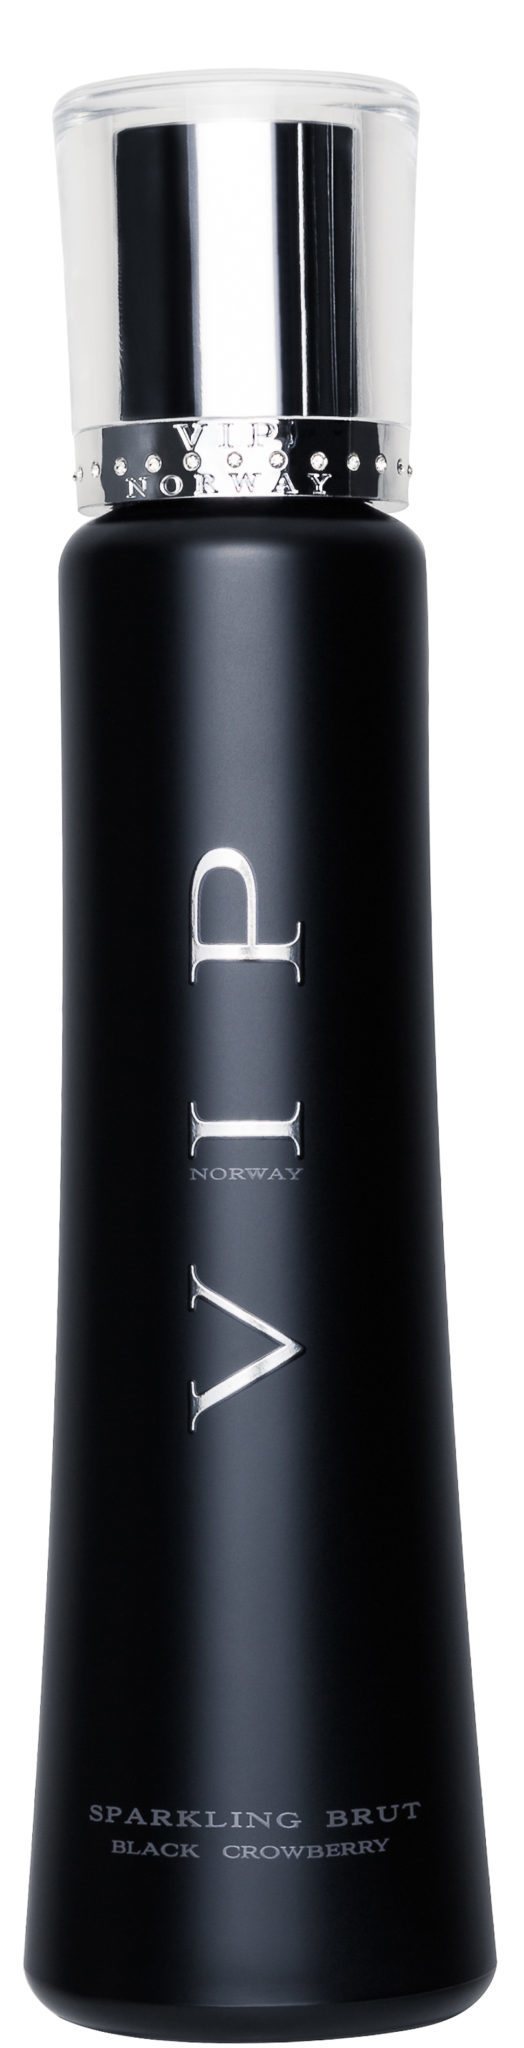 VIP Norway Black Crowberry